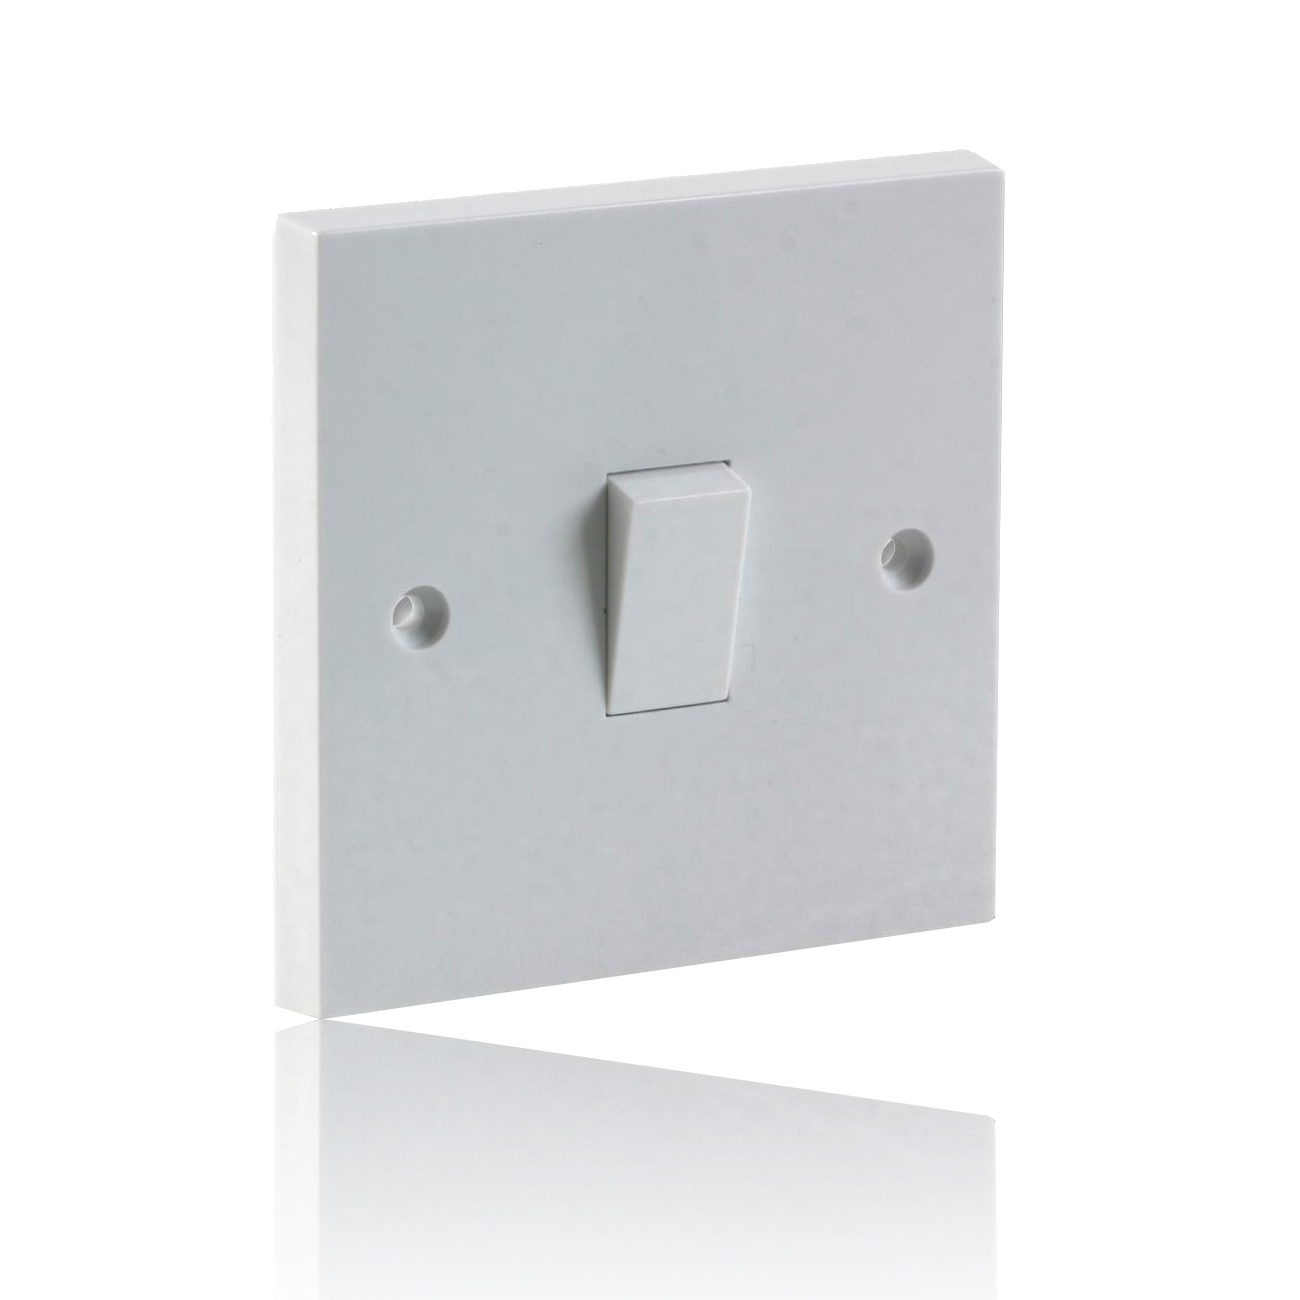 Single Gang 2 Way Light Switch 10A - White